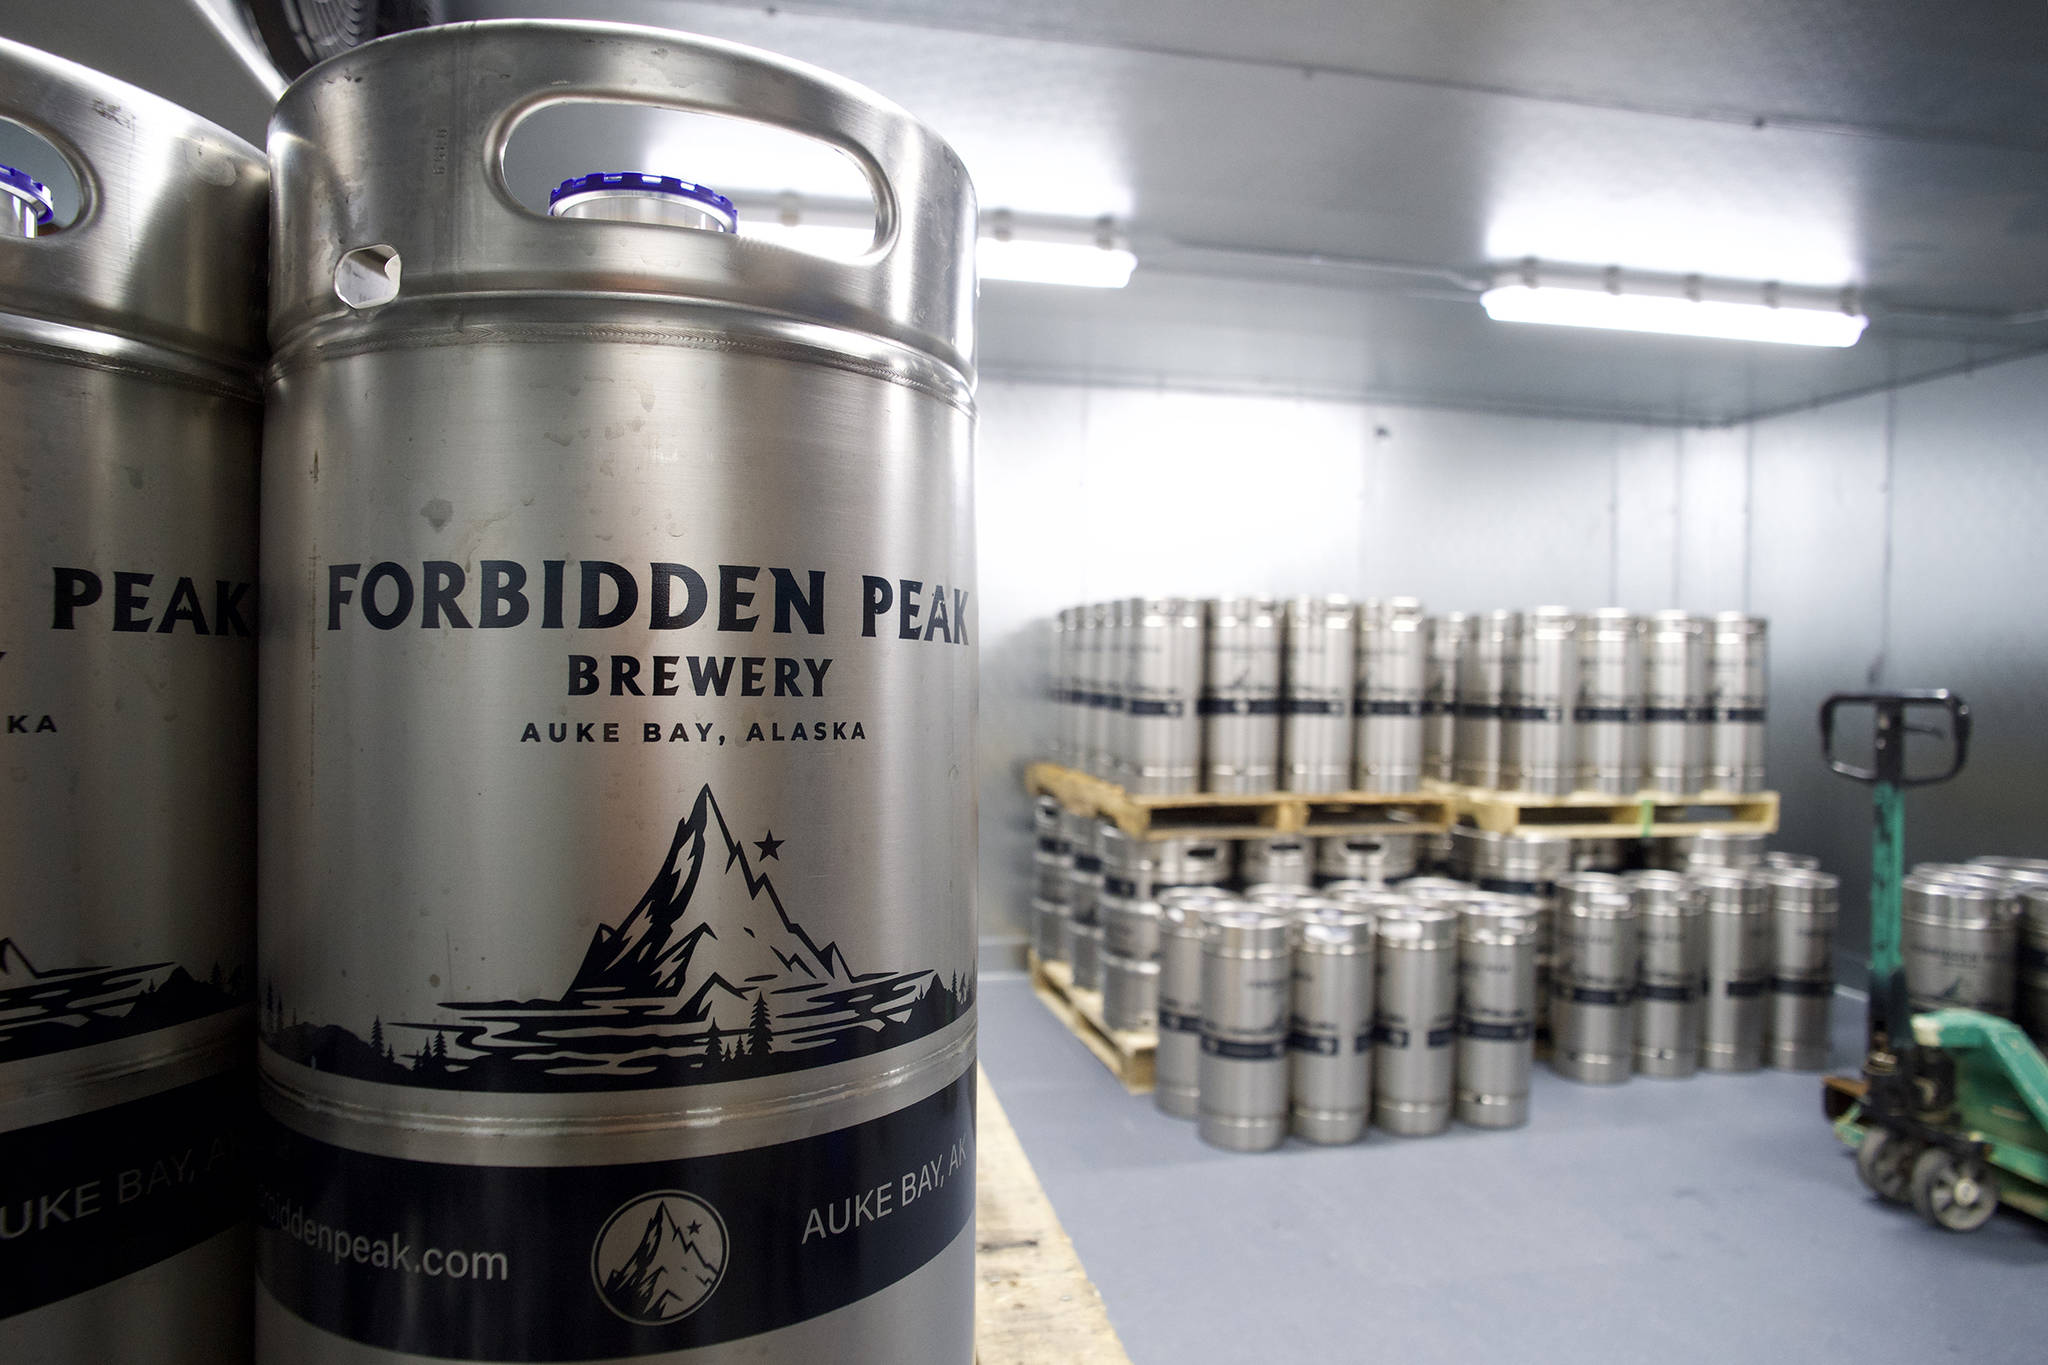 Work at the Forbidden Peak Brewery is nearly complete on Thursday, Oct. 3, 2019. The Auke Bay brewery is to open Saturday, Oct. 12. (Michael Penn | Juneau Empire)